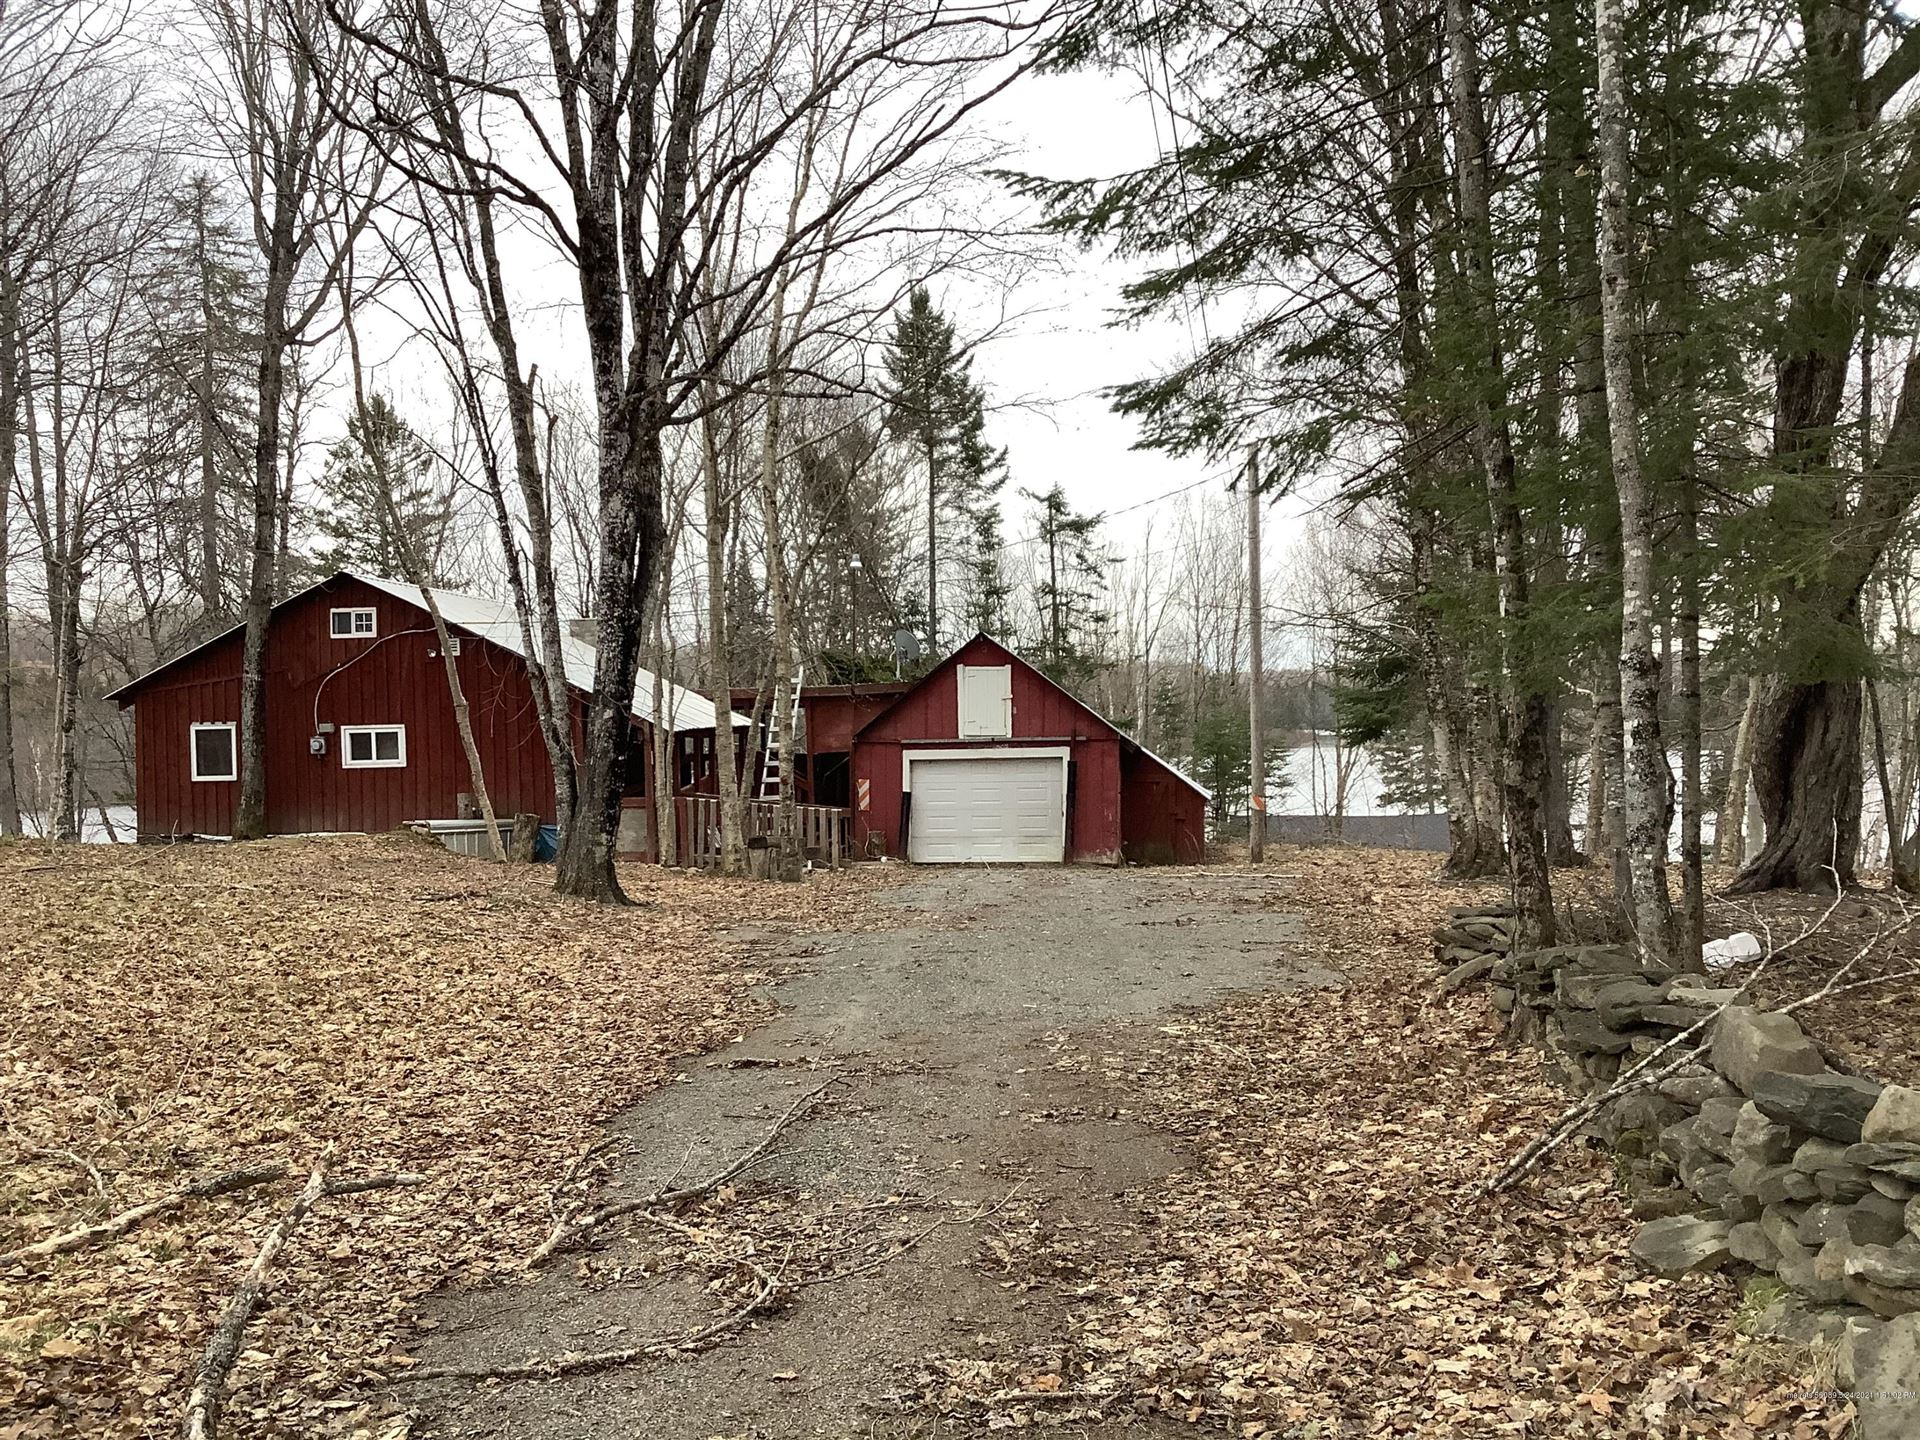 Photo of 3 Cozy Cove Drive, Fort Fairfield, ME 04742 (MLS # 1492901)